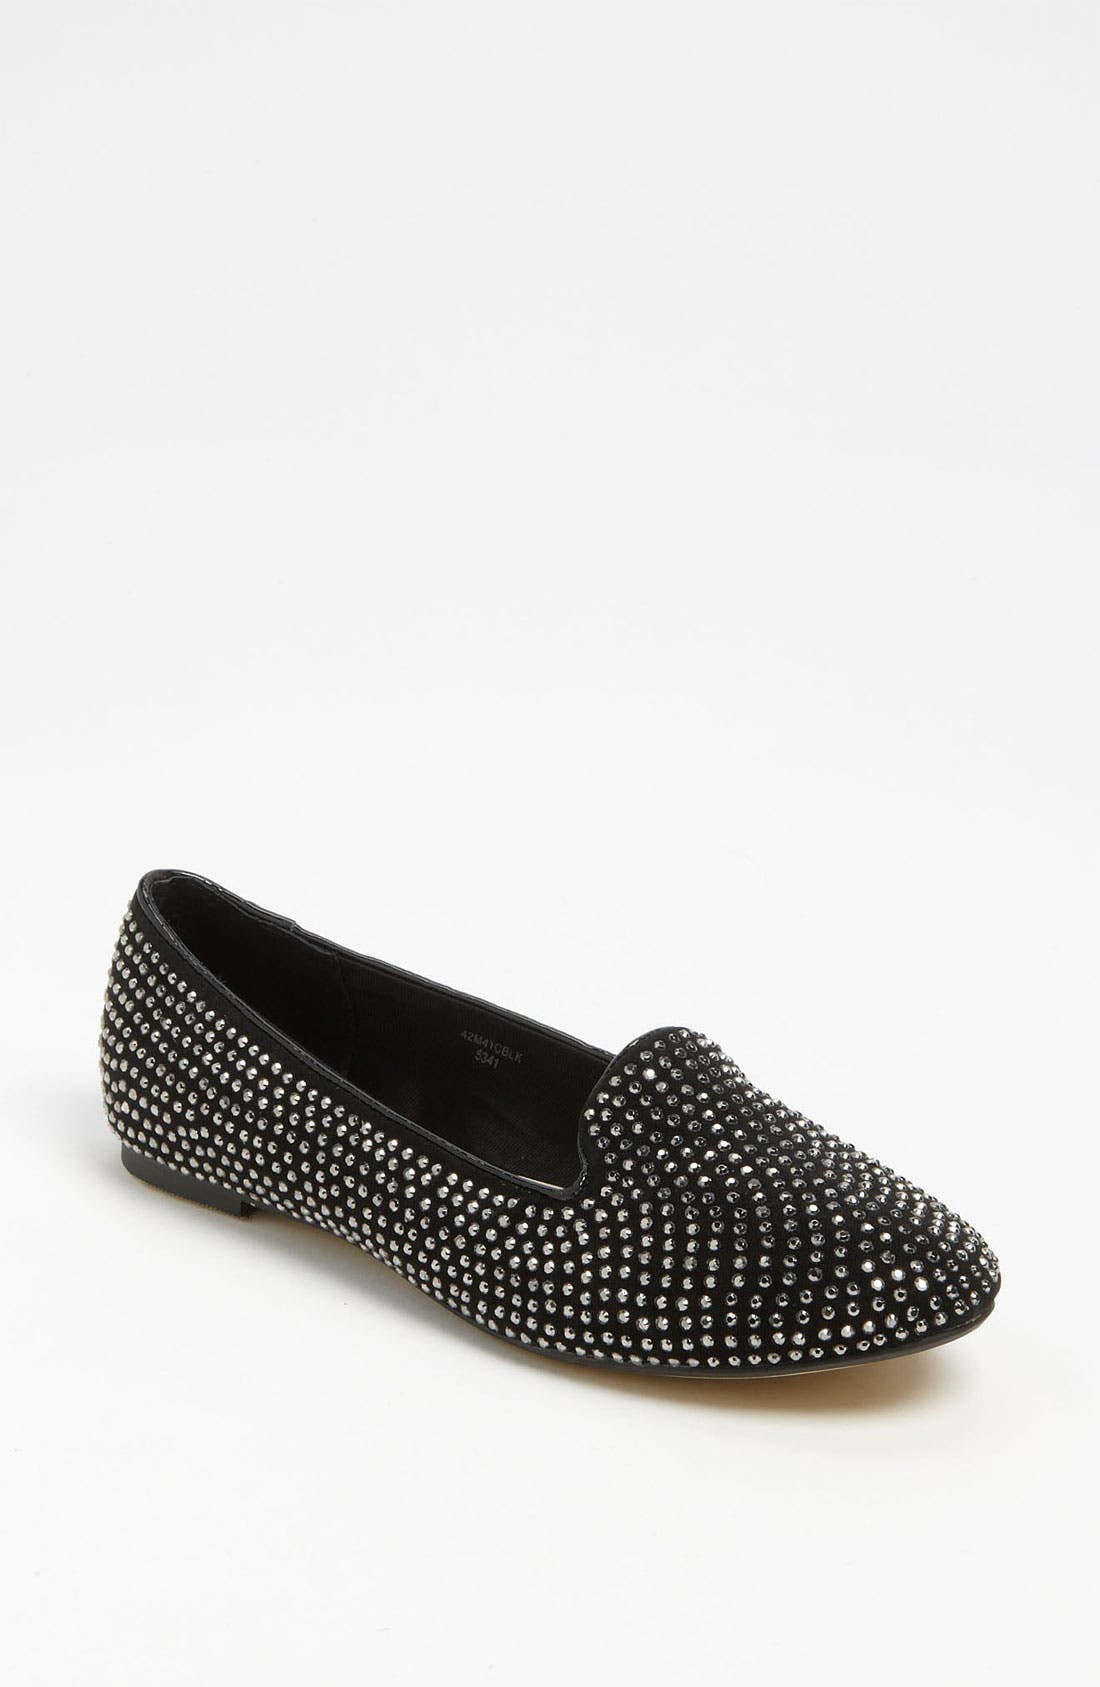 Alternate Image 1 Selected - Topshop 'Gem' Flat